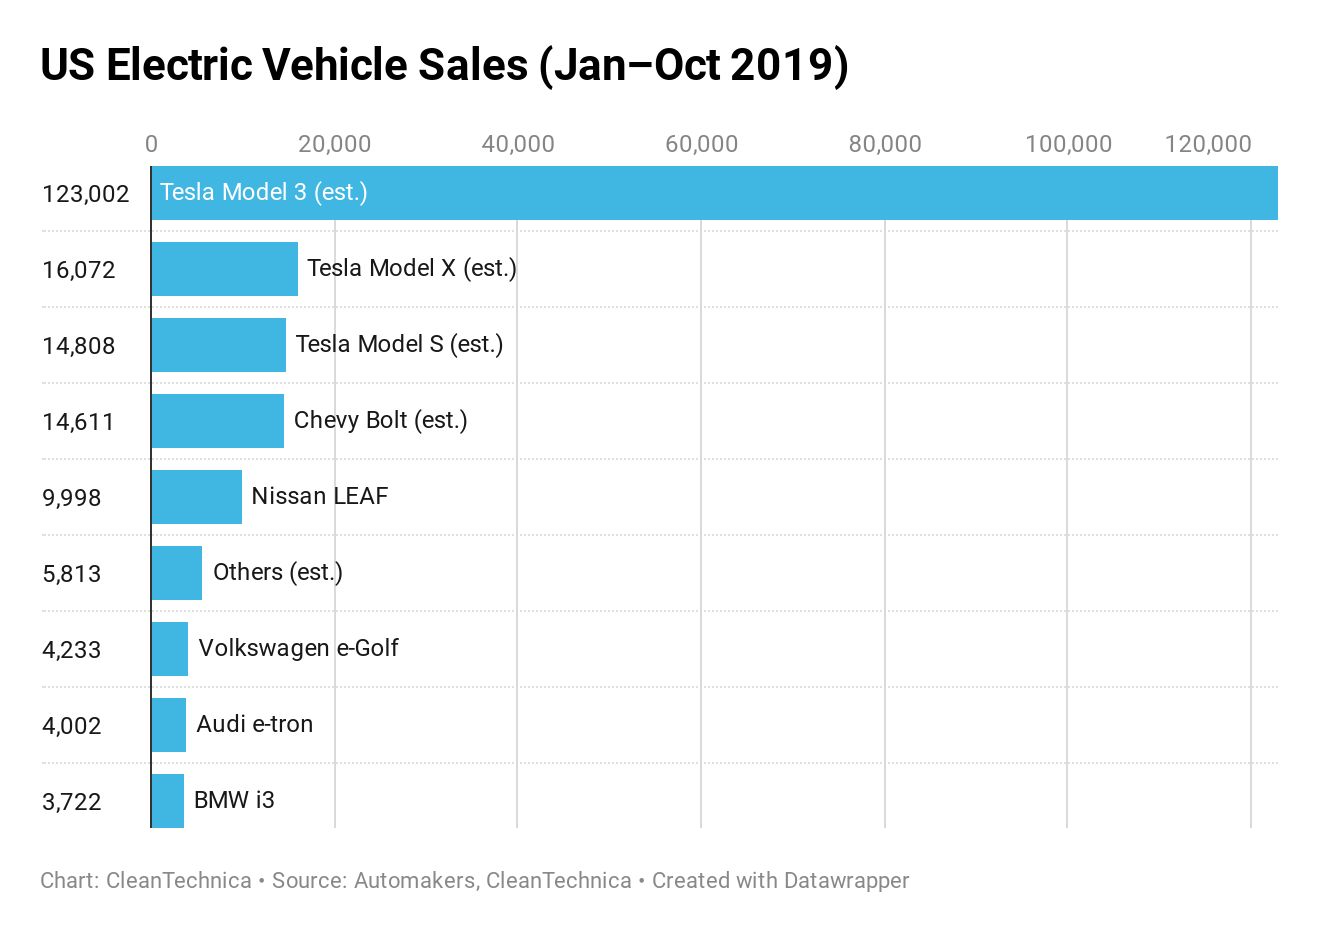 US Electric Vehicle Sales January-October 2019